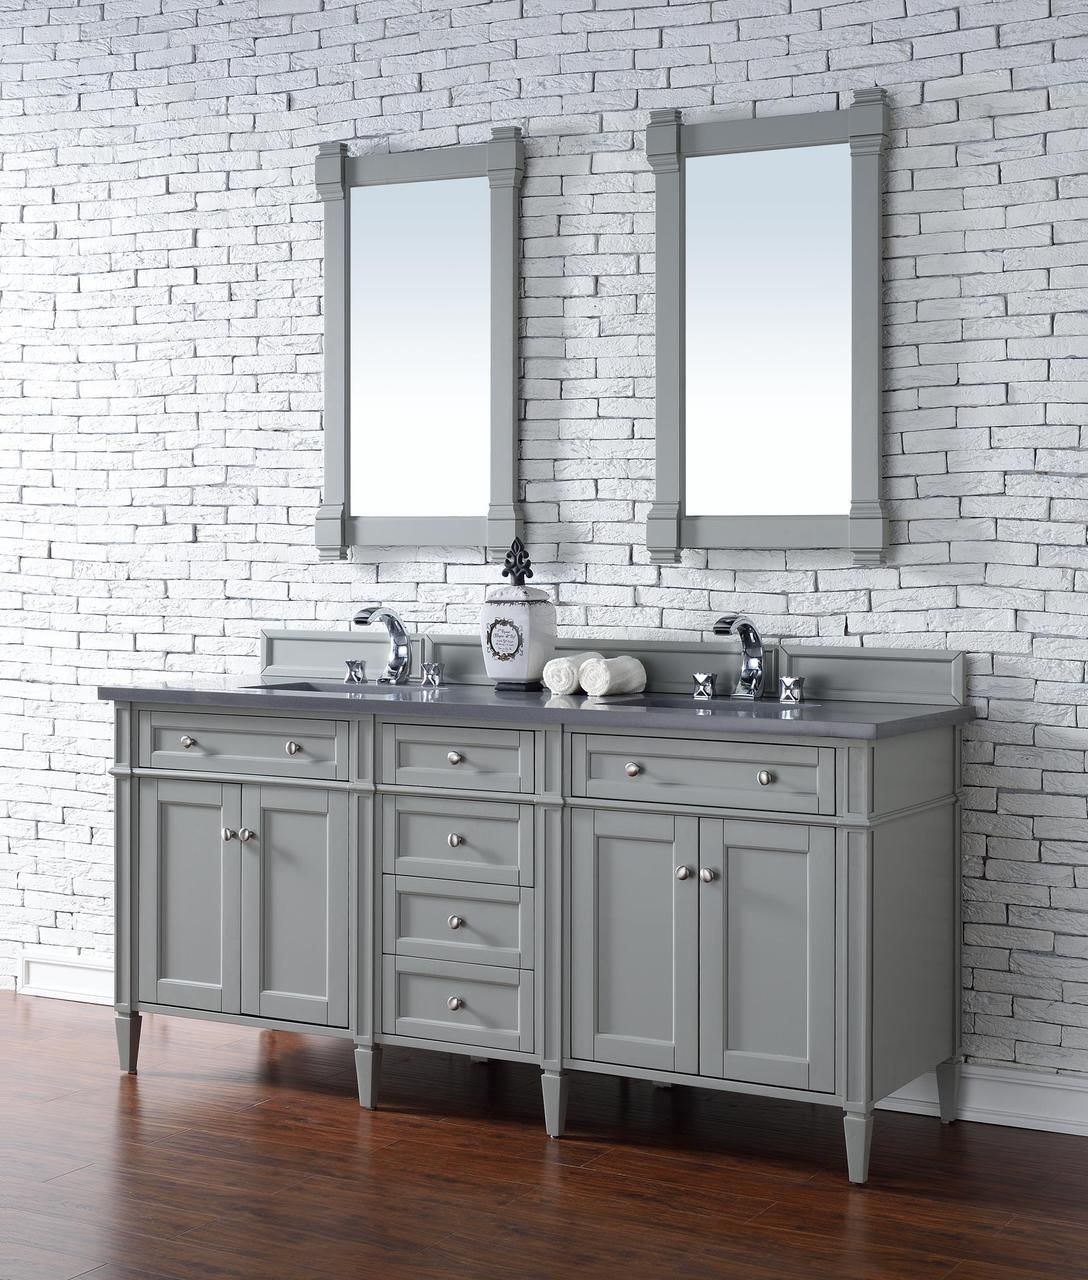 bathroom vanity 72 double sink.  Contemporary 72 inch Double Sink Bathroom Vanity Gray Finish No Top